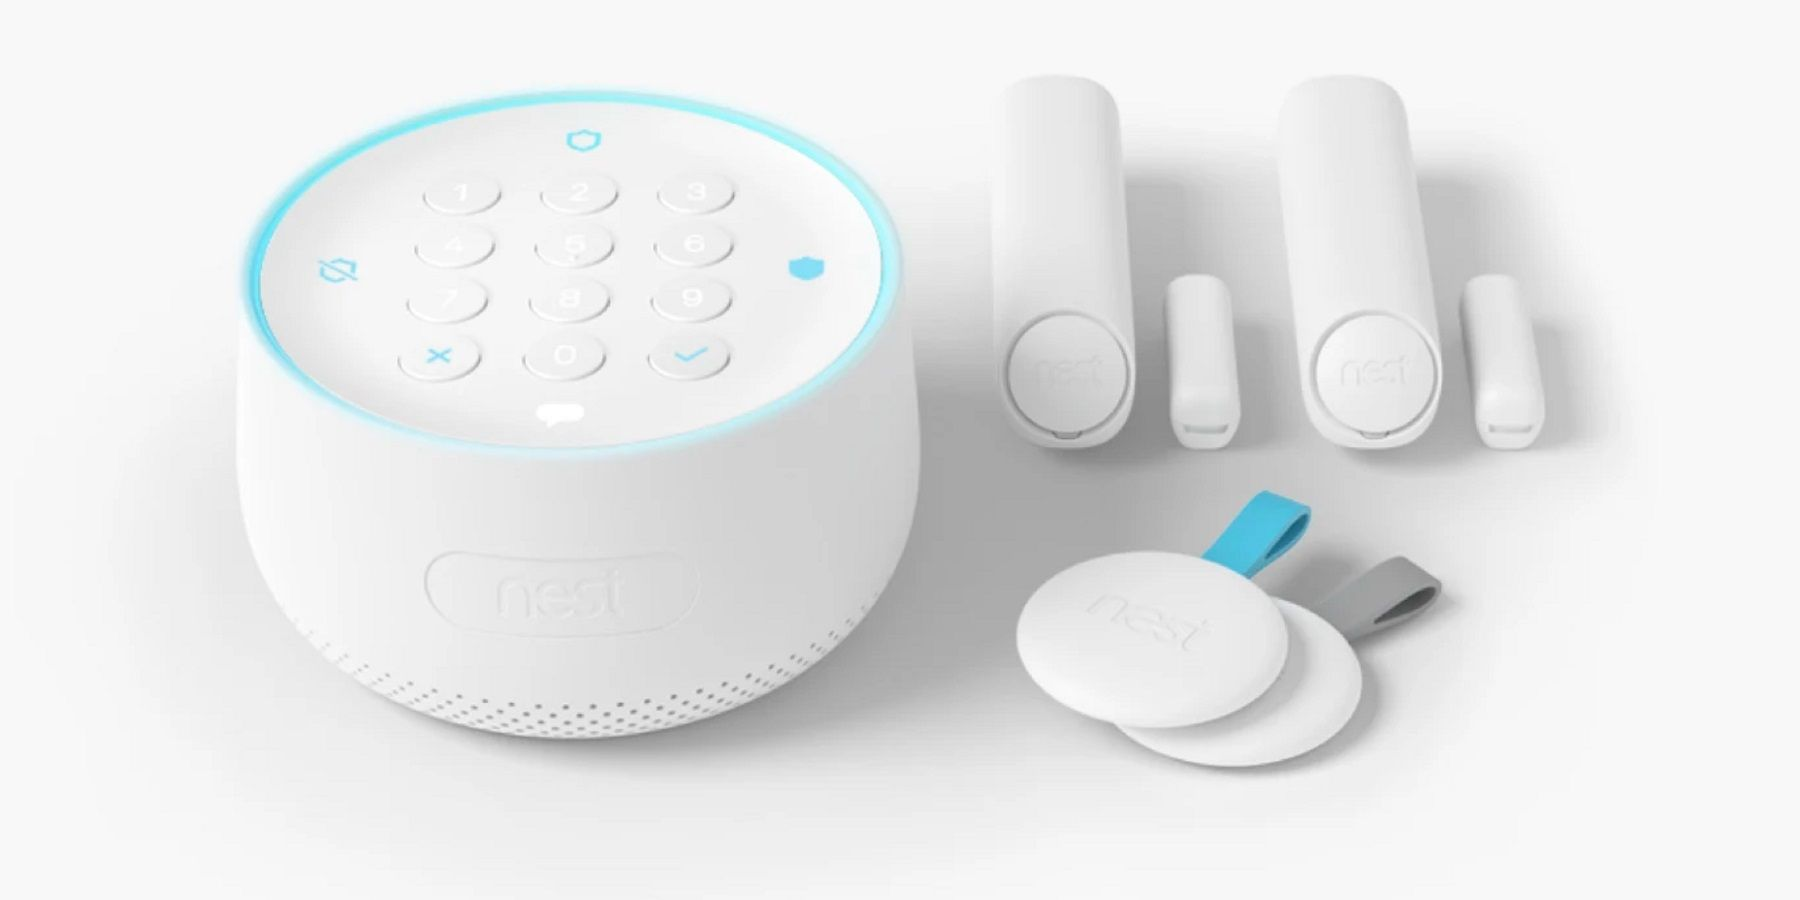 Google's Nest Secure Alarm System Discontinued: What You Need To Know